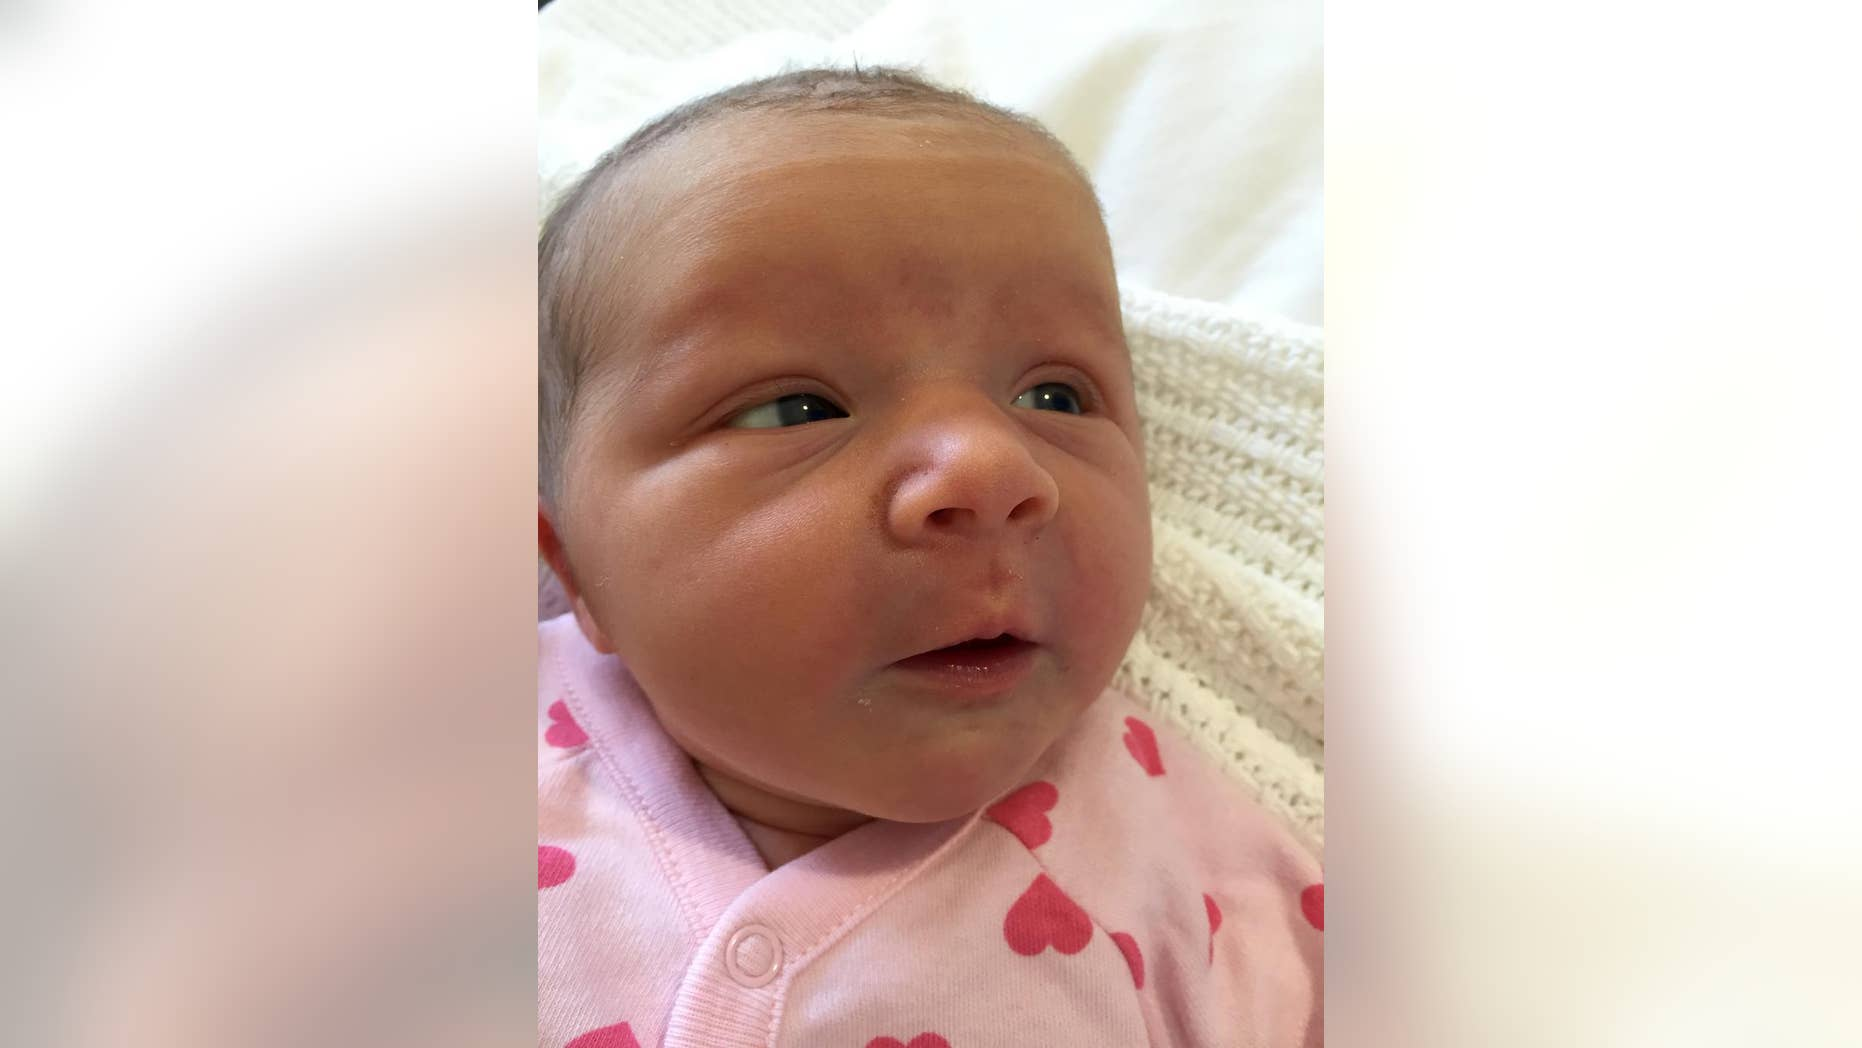 In this undated family handout photo distributed by the Australian Department of Foreign Affairs and Trade, baby Violet May Maslin is photographed shortly after her birth, Tuesday, May 10, 2016, in Perth, Australia. An Australian couple whose three children were killed in the downing of Malaysia Airlines Flight 17 two years ago has welcomed baby Violet. (Maslin Family/Australian Department of Foreign Affairs and Trade via AP) MANDATORY CREDIT